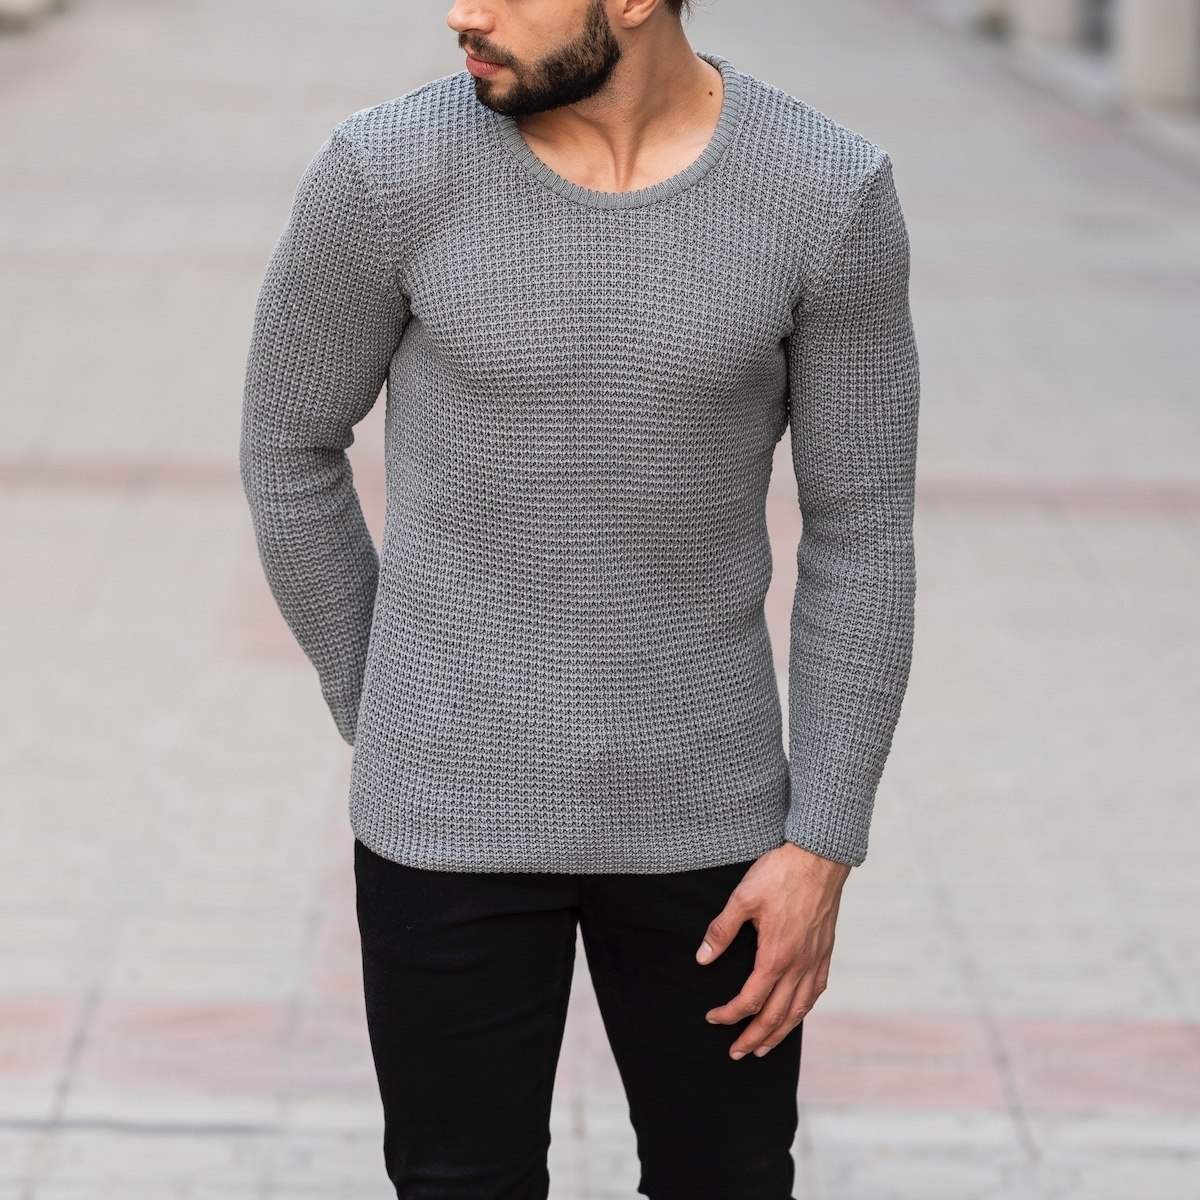 Knitted Pullover In Gray Mv Premium Brand - 3